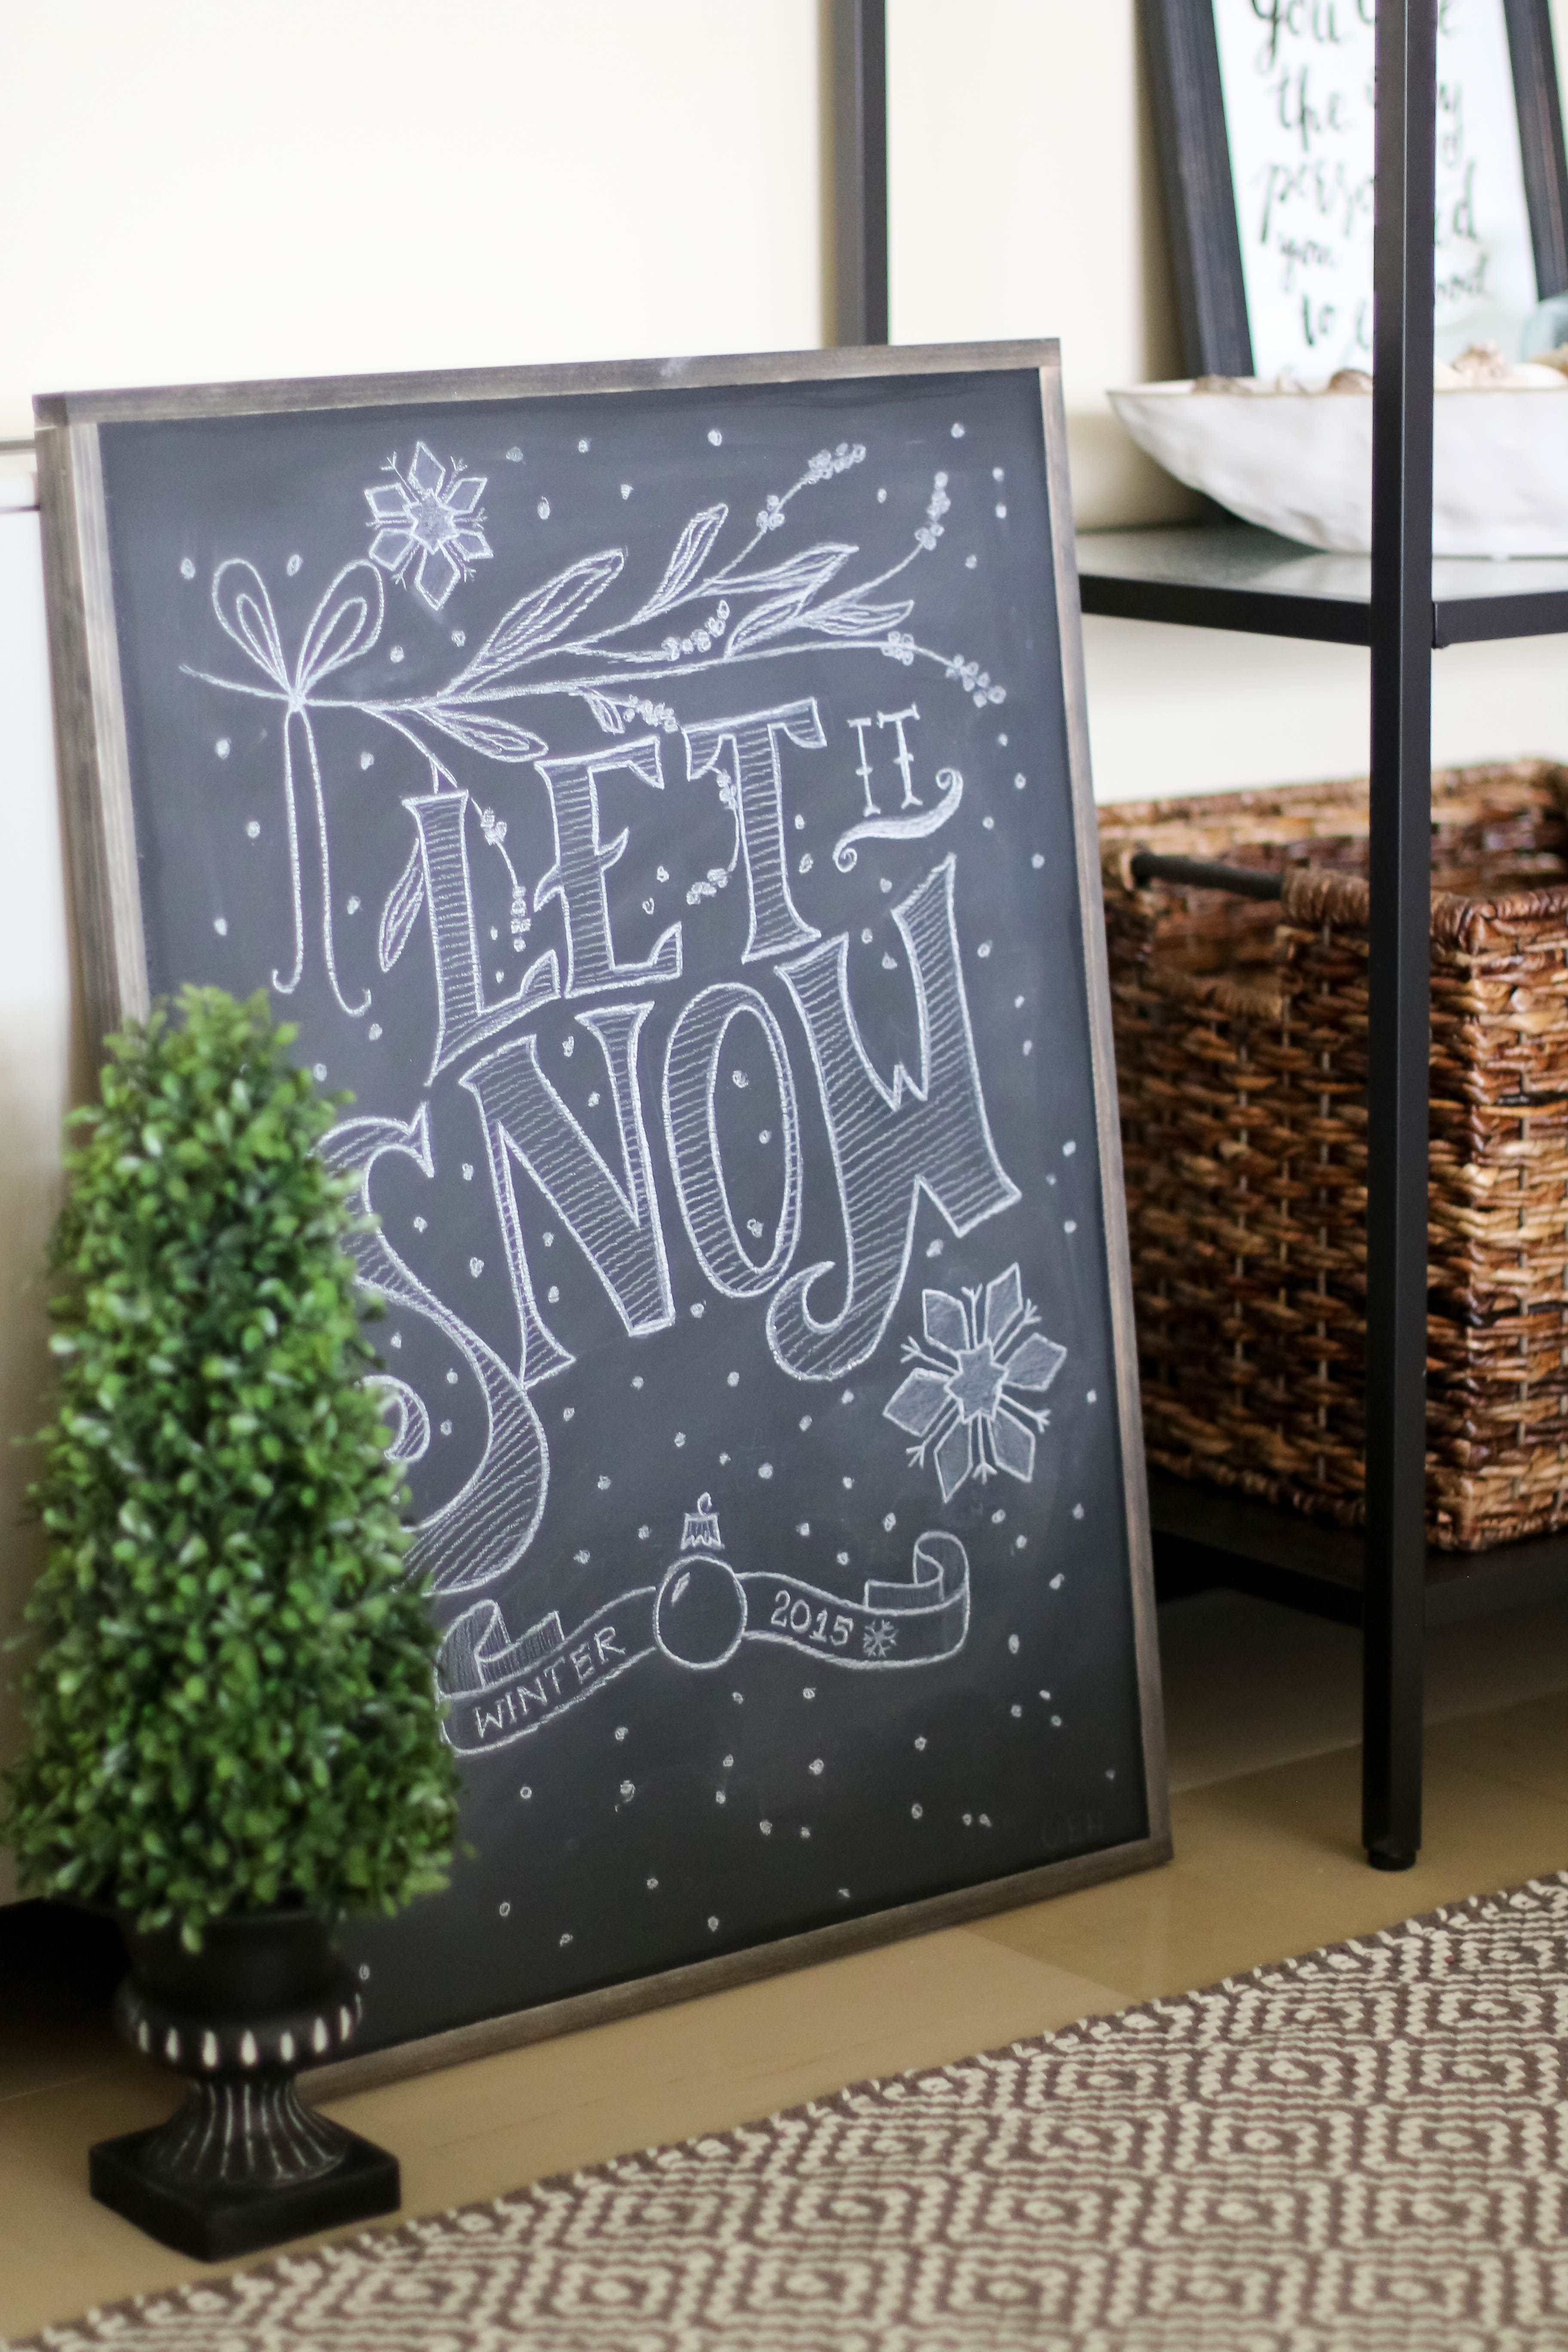 How To Make A Framed Chalkboard Tips For Great Chalk Art